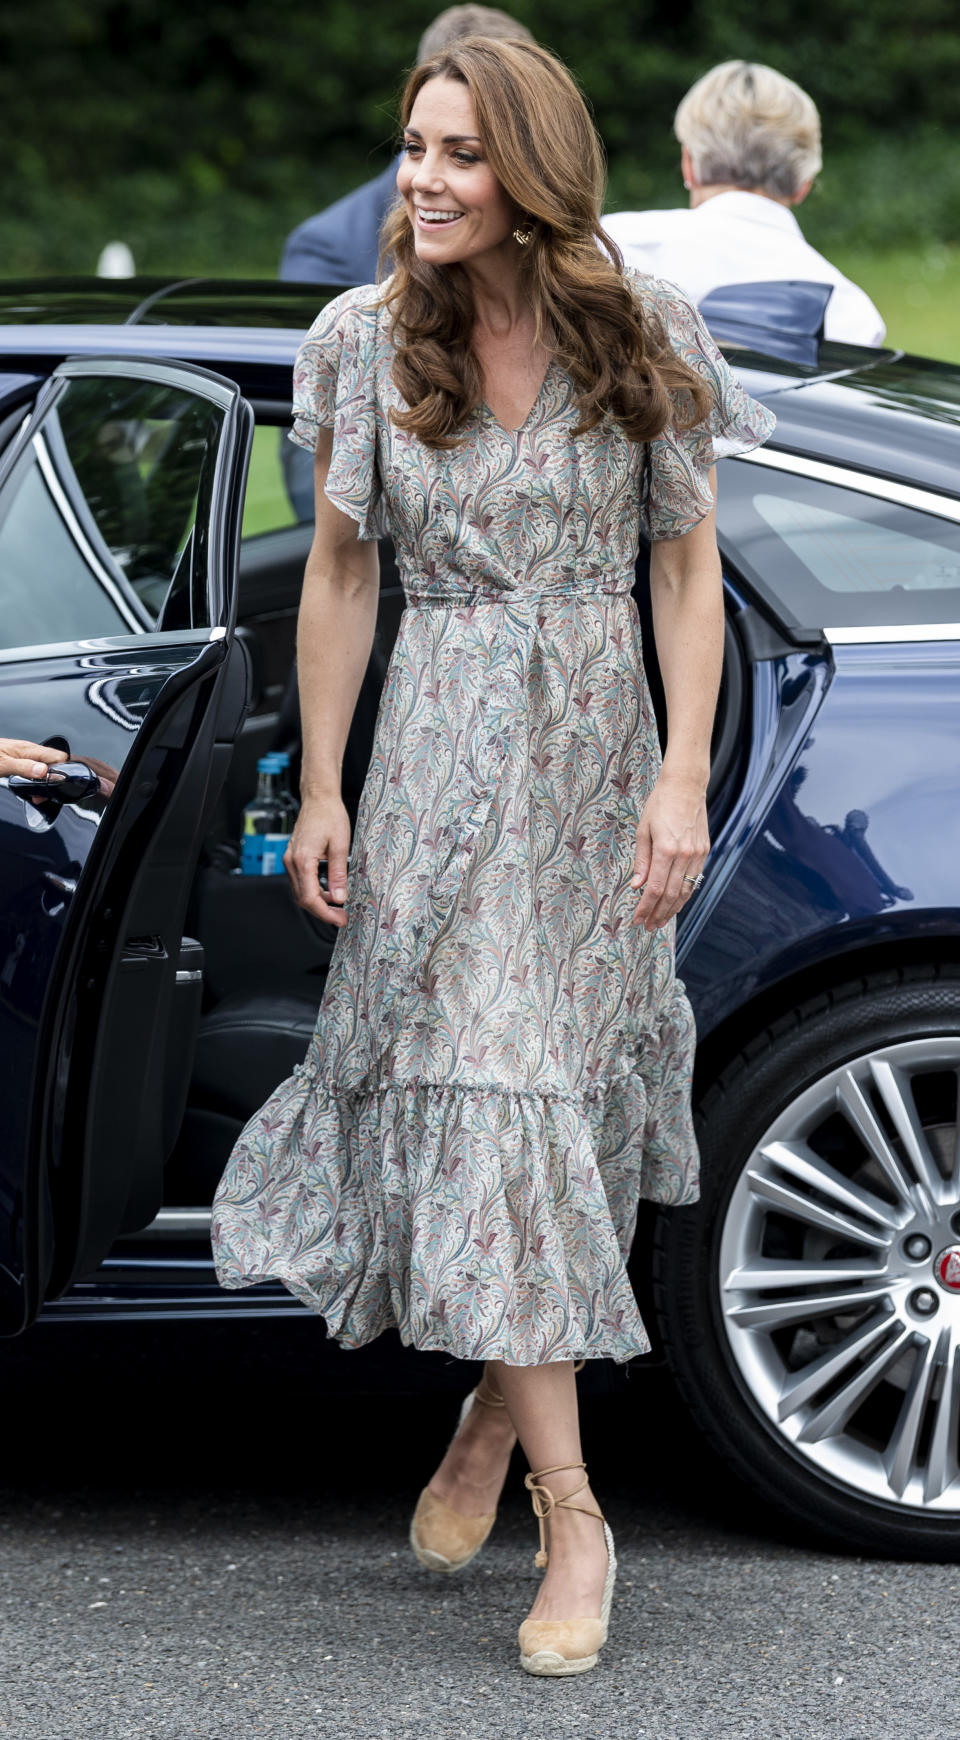 The Duchess of Cambridge wore the paisley dress for a Kingston engagement back in June [Photo: Getty]